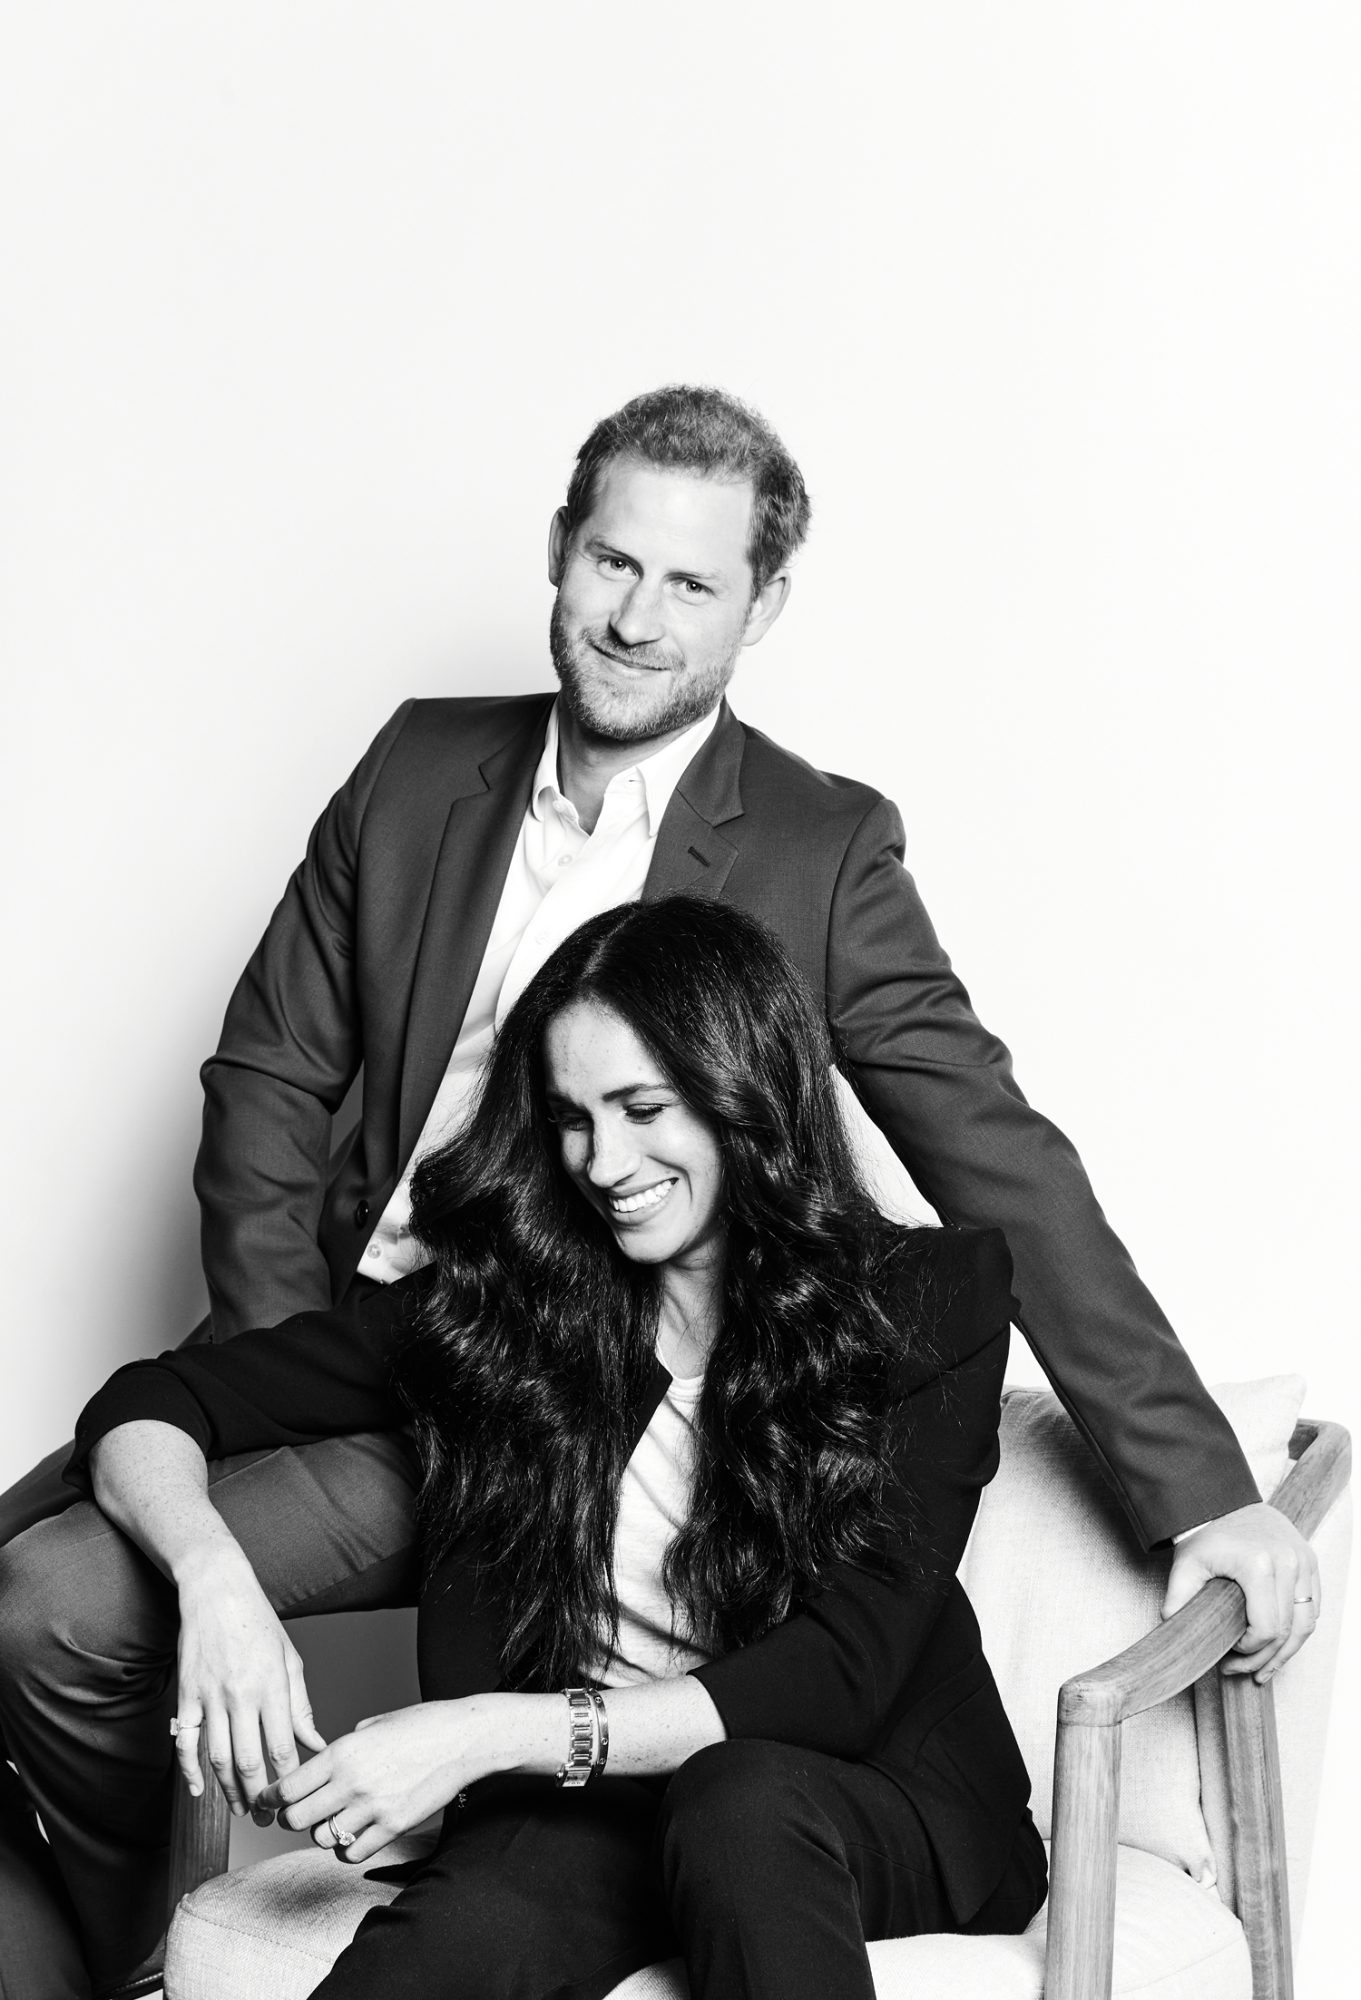 Prince Harry and Meghan Markle shot for the Time 100 event